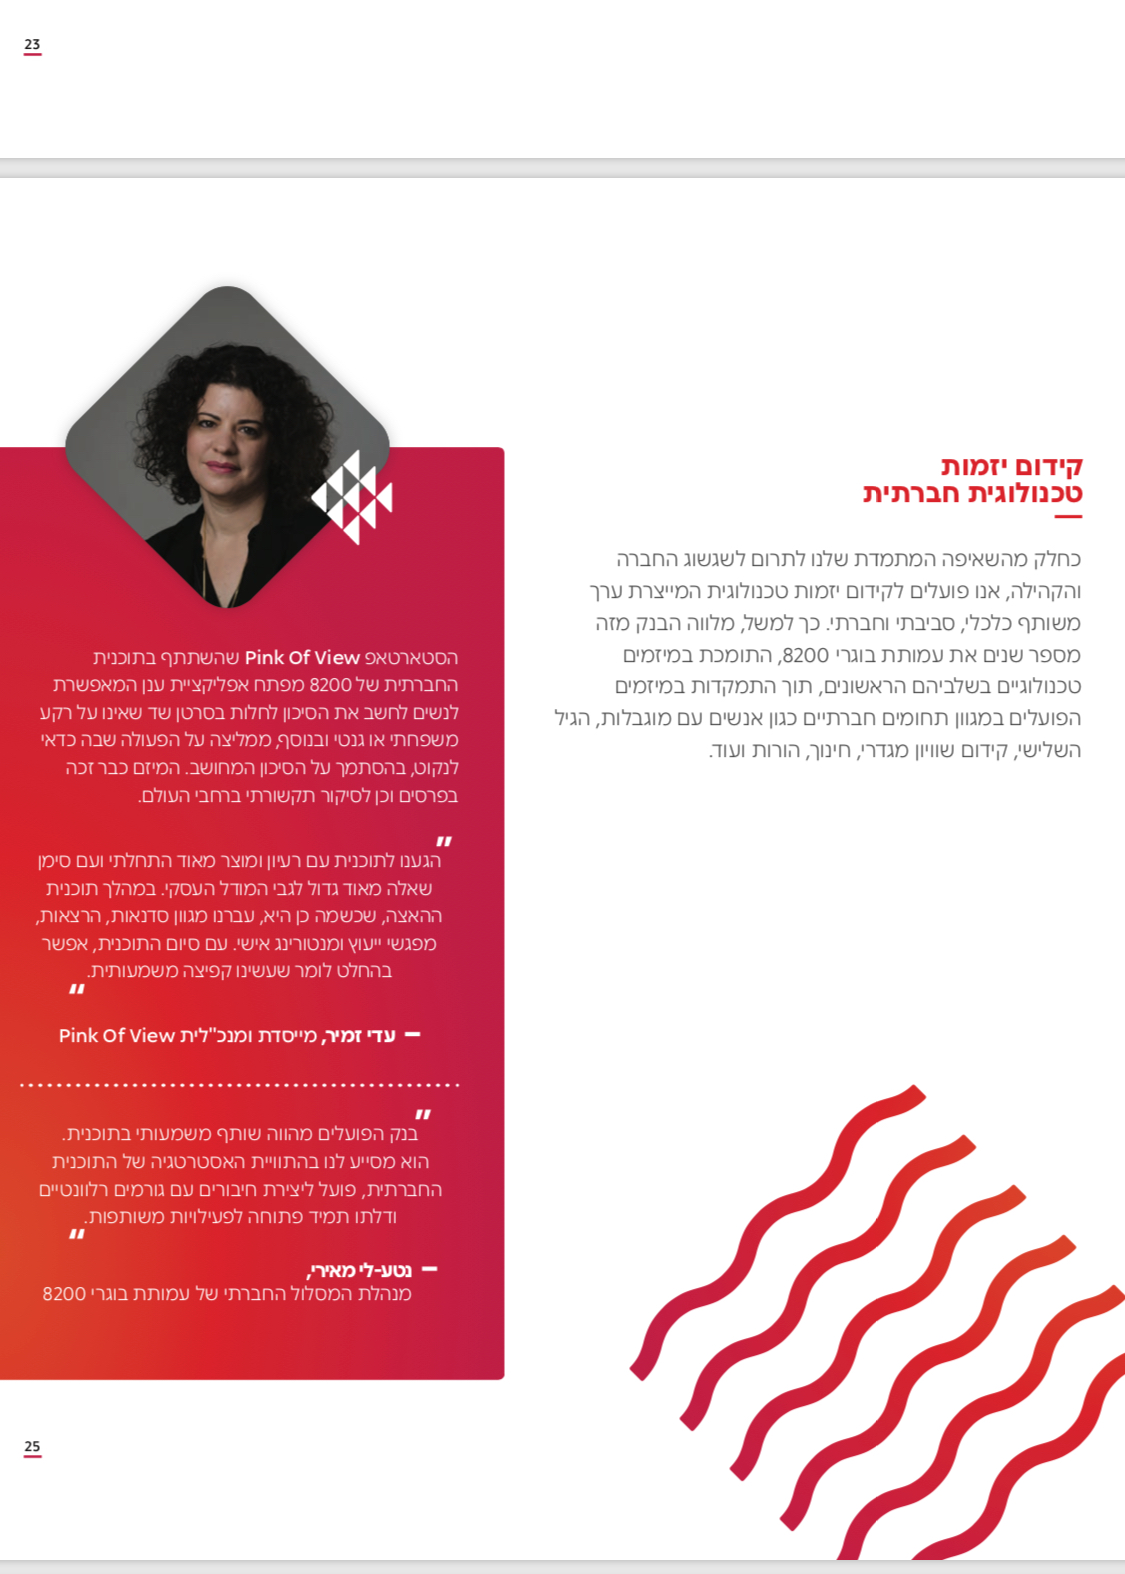 - Pink Of View's activity is included as part of Bank Hapoalim's social responsibility annual report.